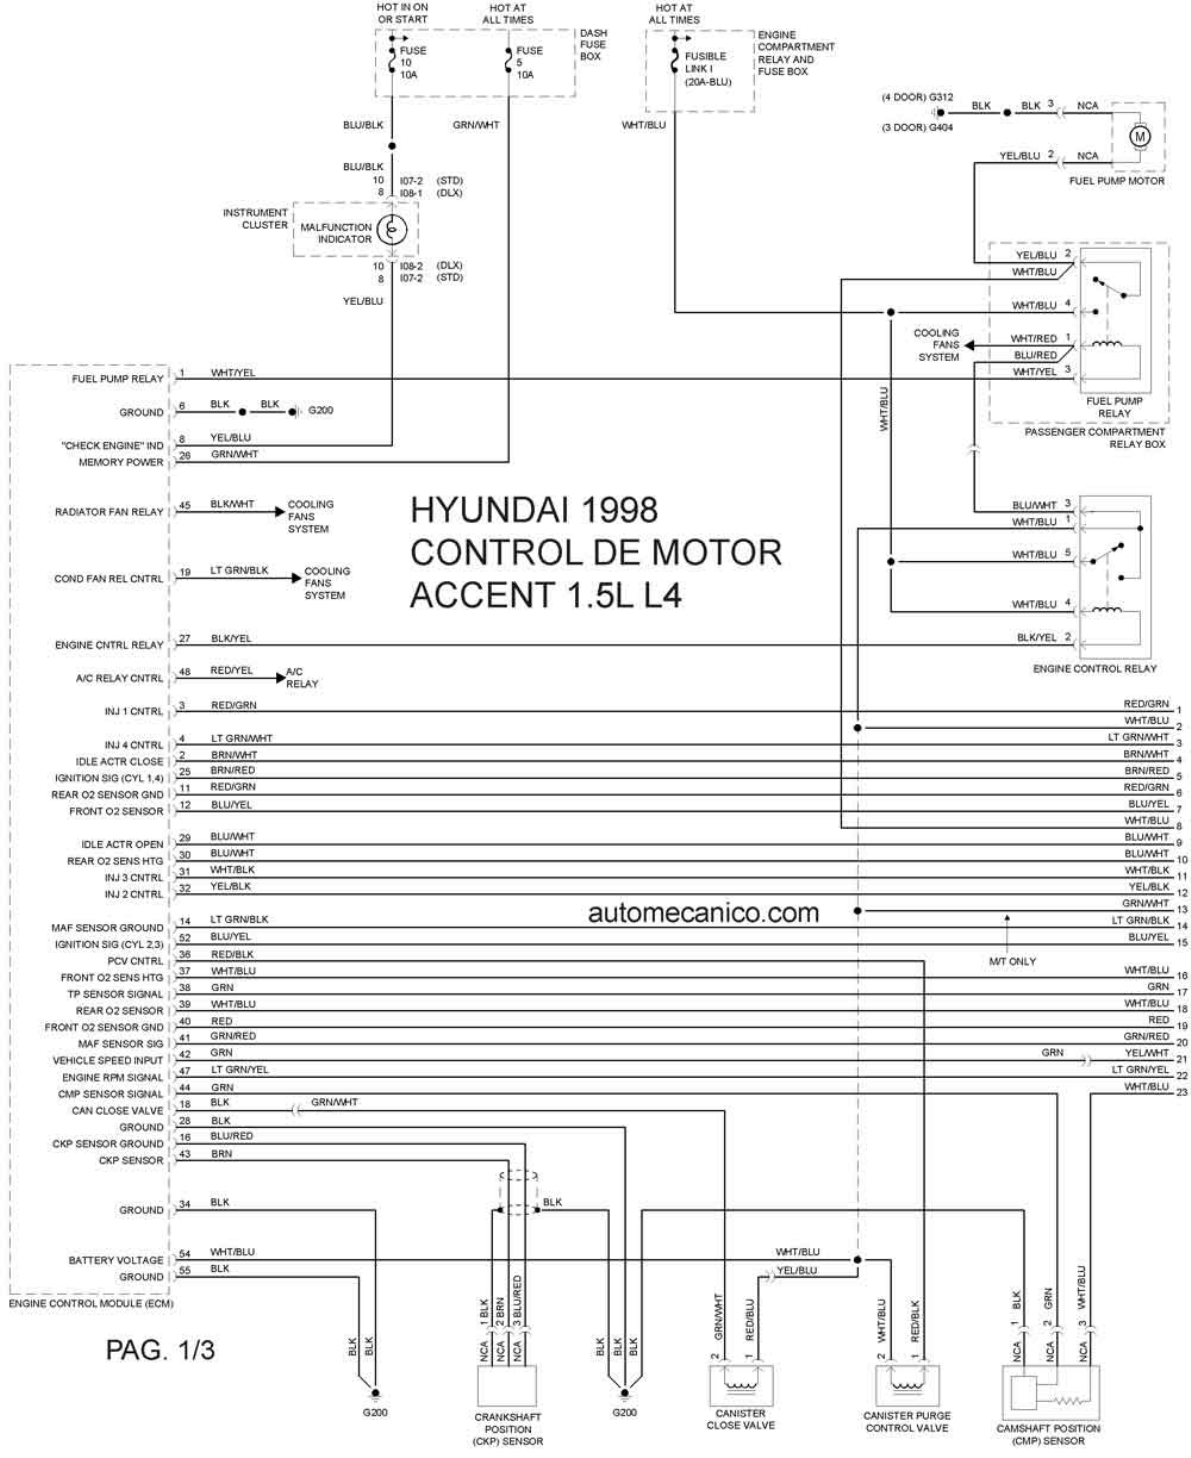 1995 Hyundai Accent Radio Wiring Diagram : Hyundai accent misc document wiring diagram pdf